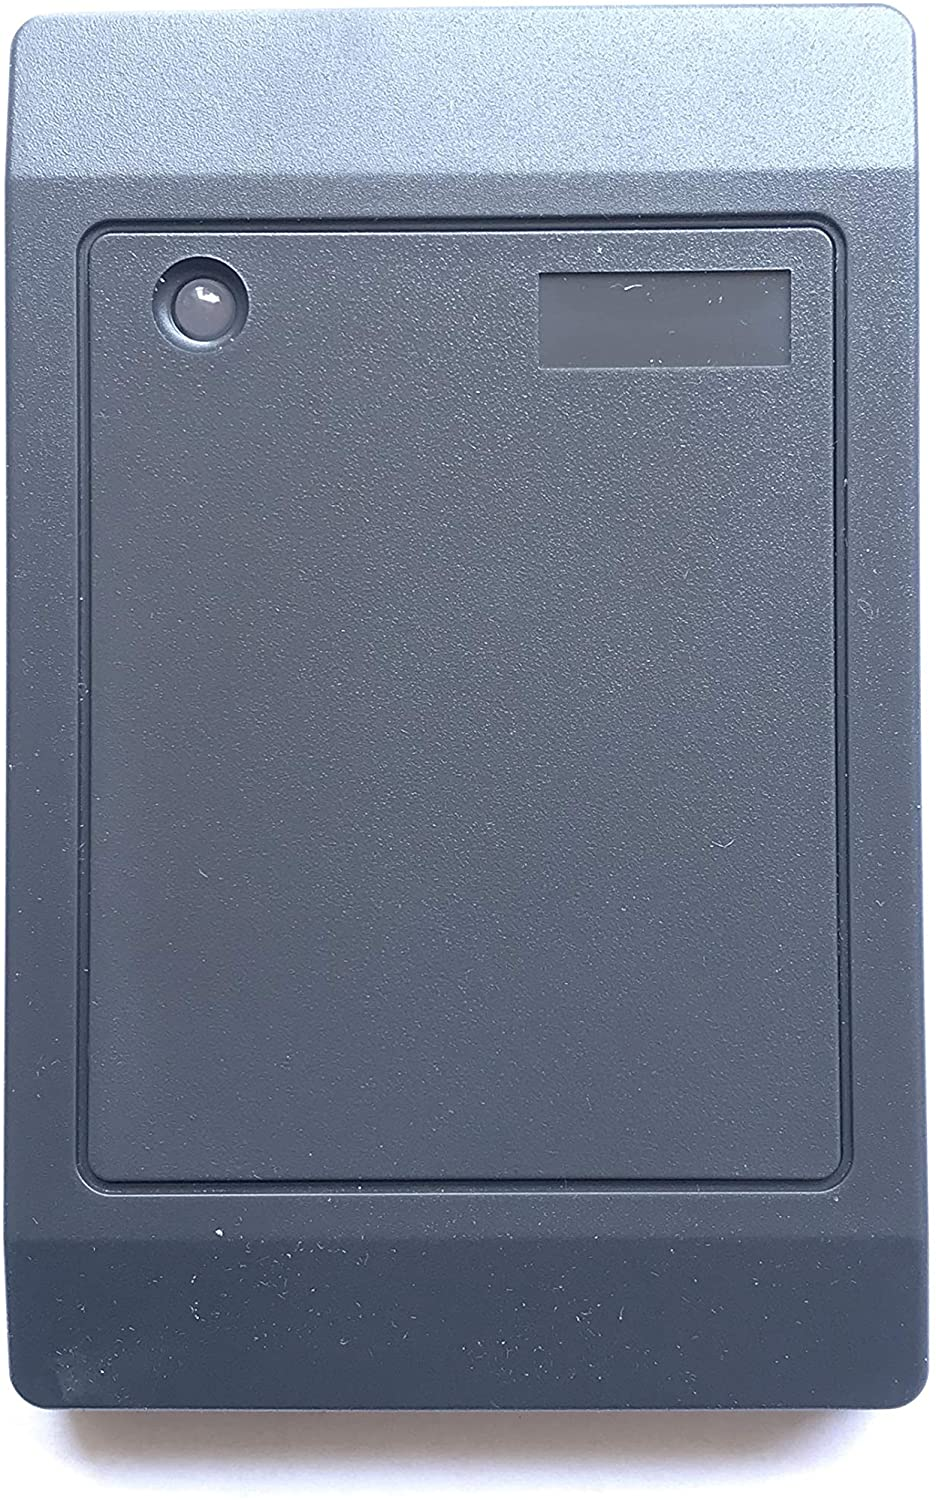 Dual Frequency 125khz and 13.56MHZ Waterproof WG26/34 RFID Access Control Reader